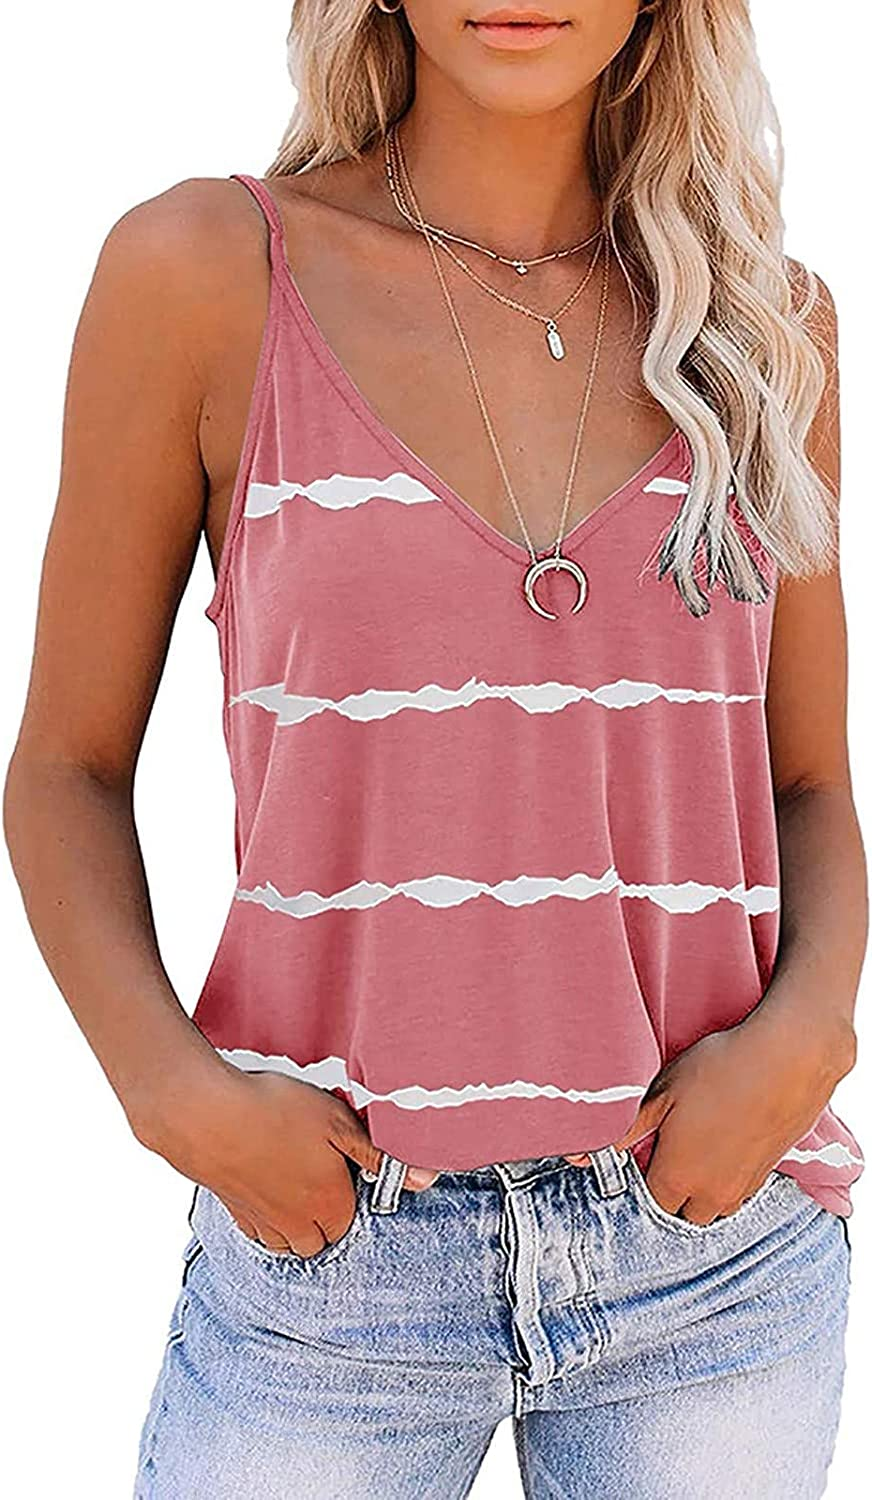 felwors Tank Tops for Women, Womens Fashion Casual Summer Sleeveless Vacation Graphic Vest Tops Tee Shirts Blouse Tops